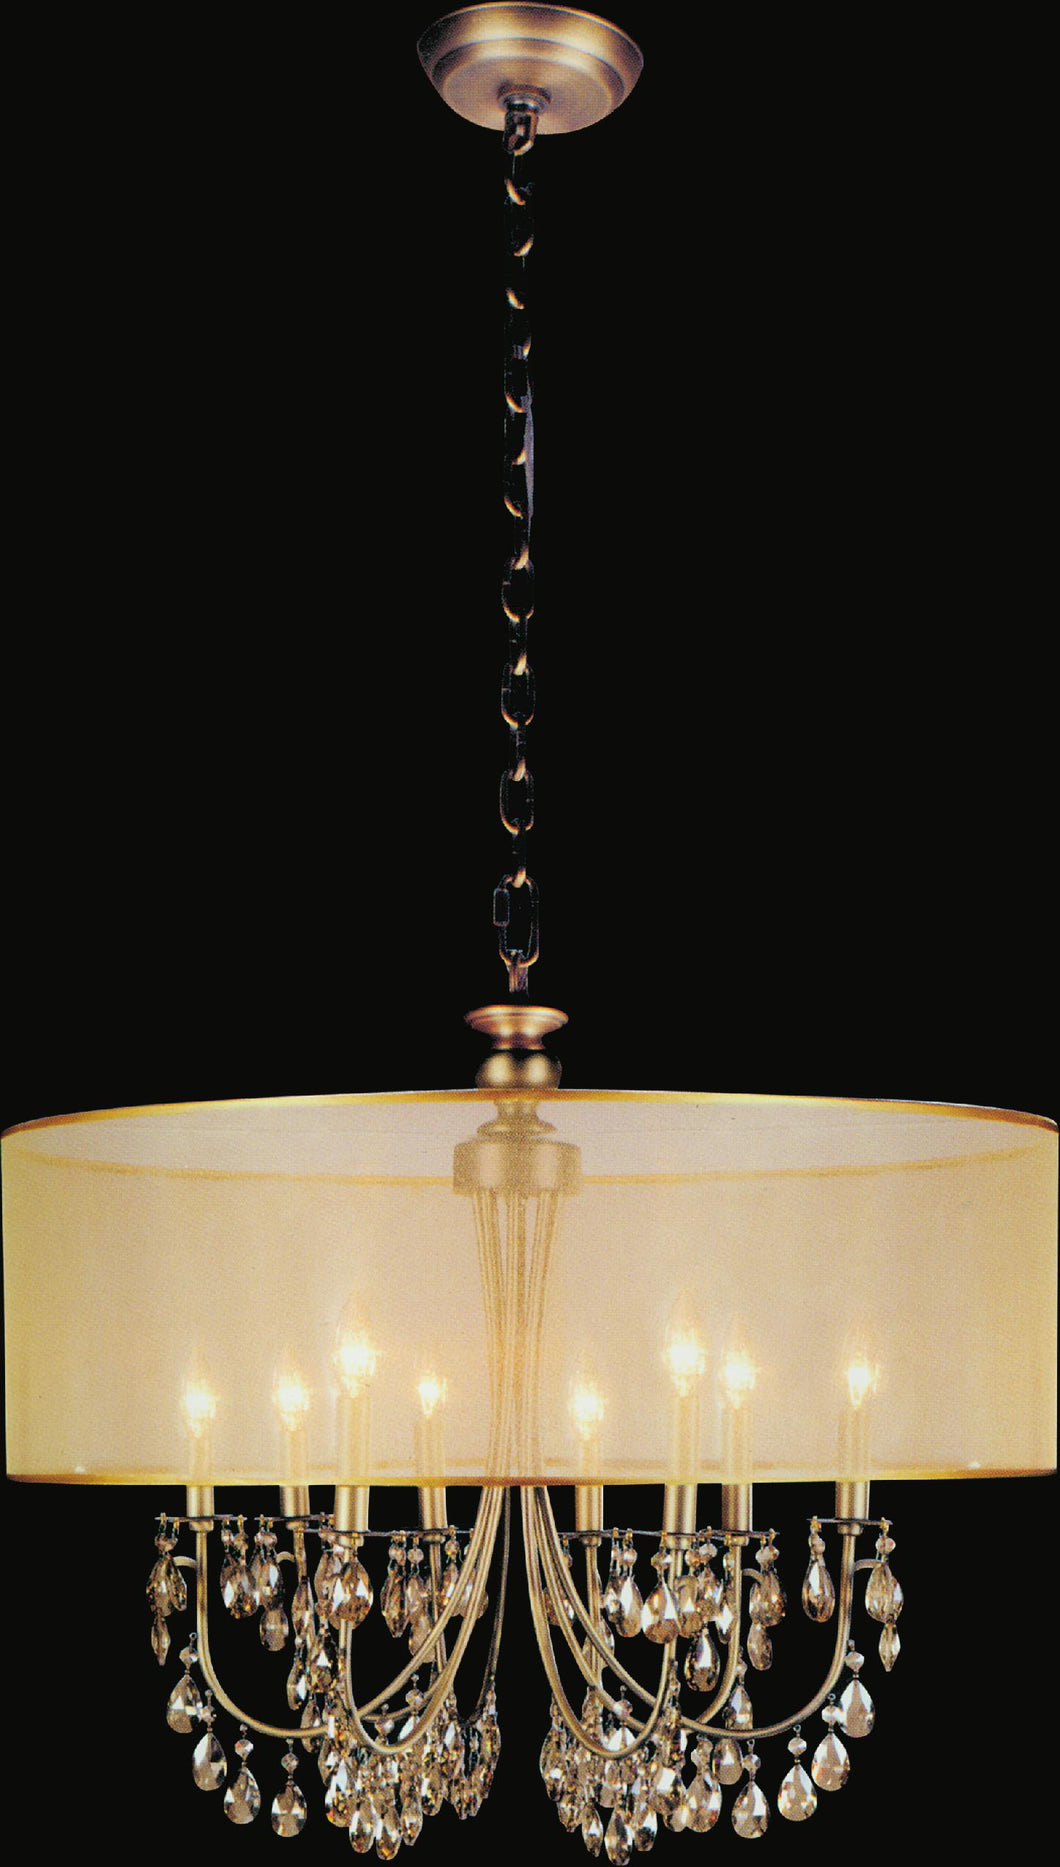 8 Light Drum Shade Chandelier with French Gold finish